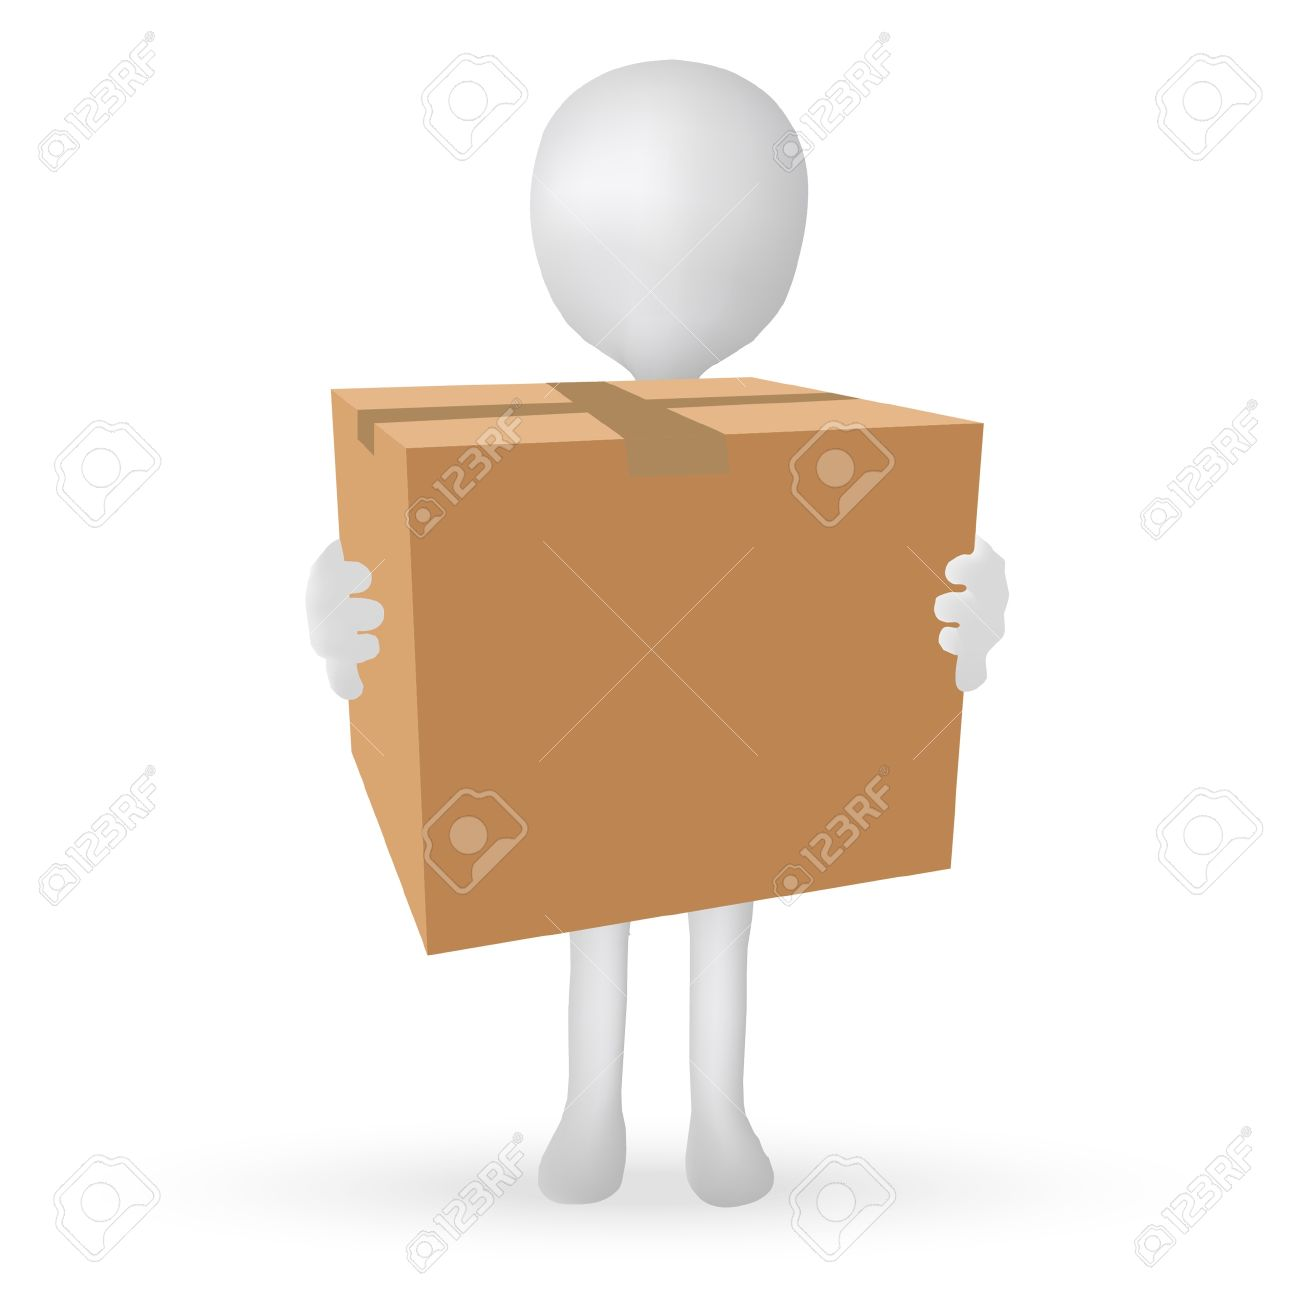 EPS Vector 10 - small 3d man hands holding a box Stock Vector - 18586807